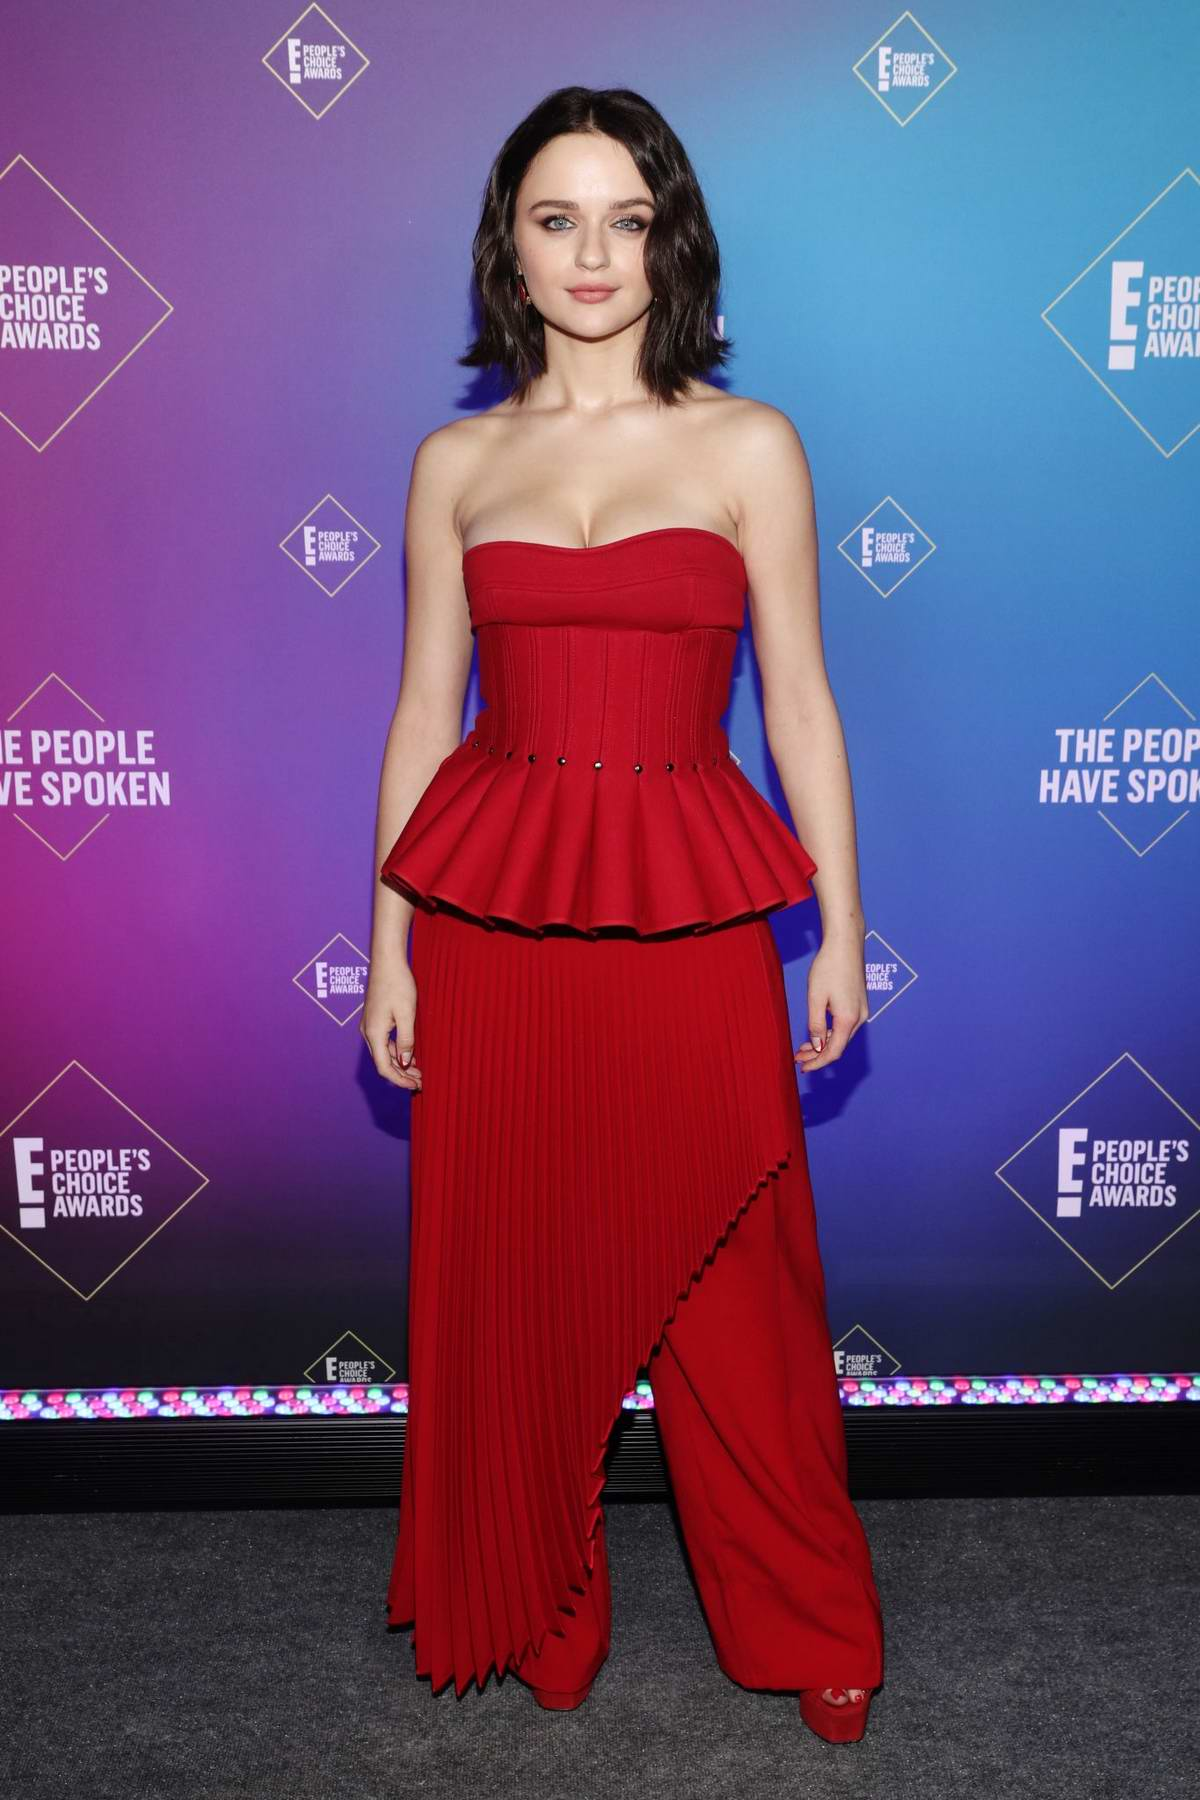 Joey King attends the 2020 E! People's Choice Awards at The Barker Hangar in Santa Monica, California